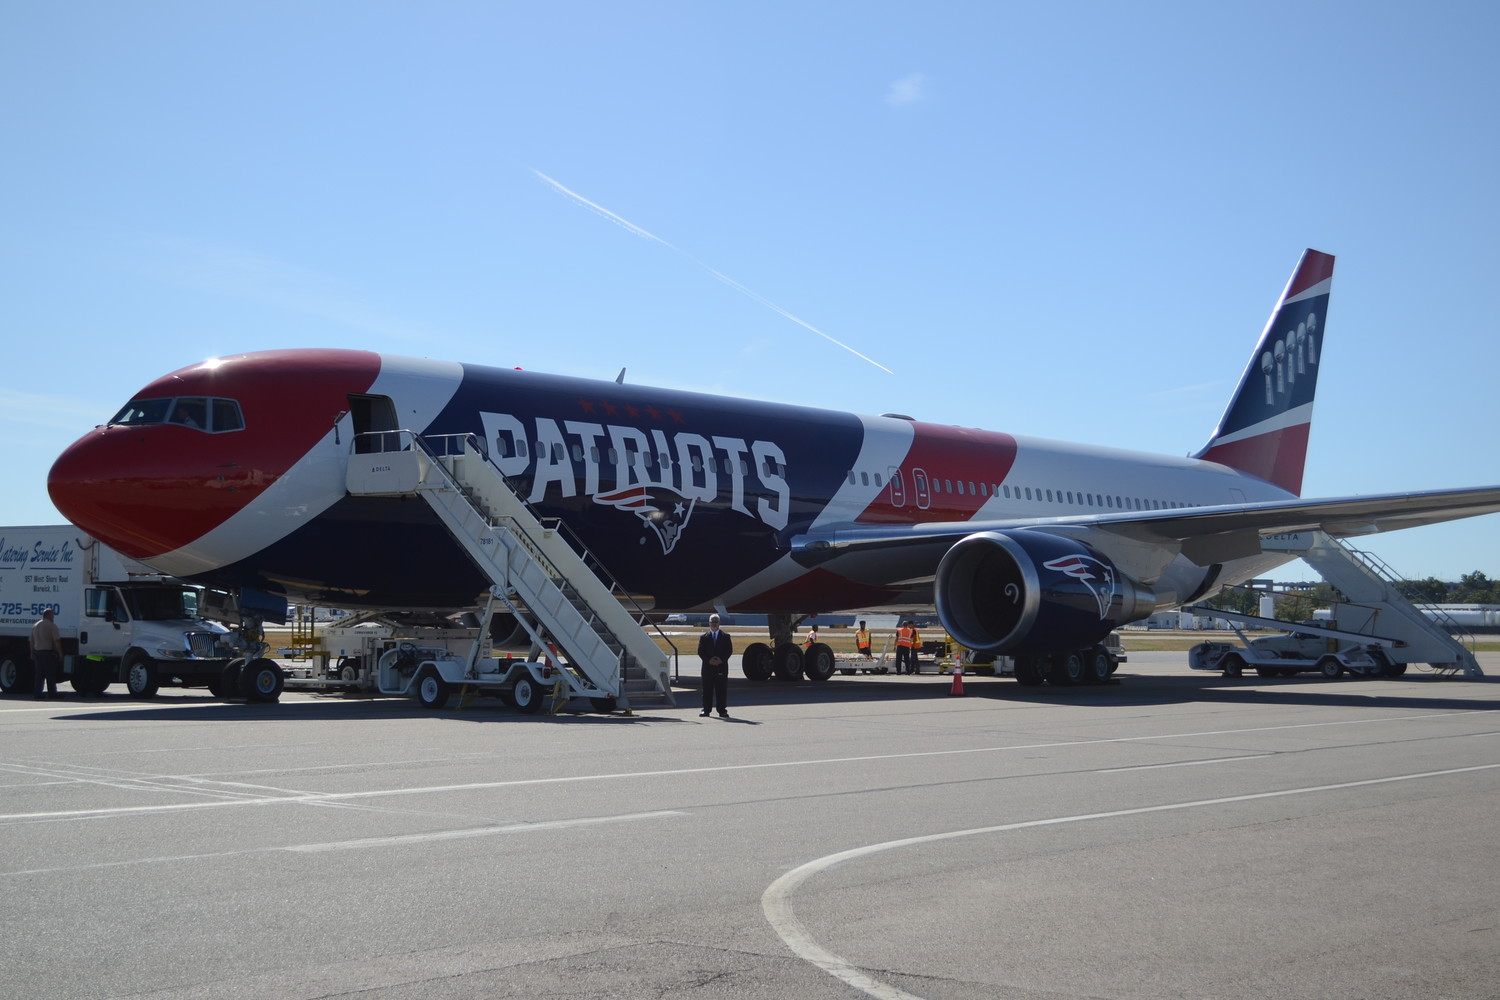 CURB APPEAL: The Patriots plane parked in its new spot at TF Green. Proponents of the deal between the airport and the professional football team hope that having the jet parked at TF Green will help boost interest in the airport.